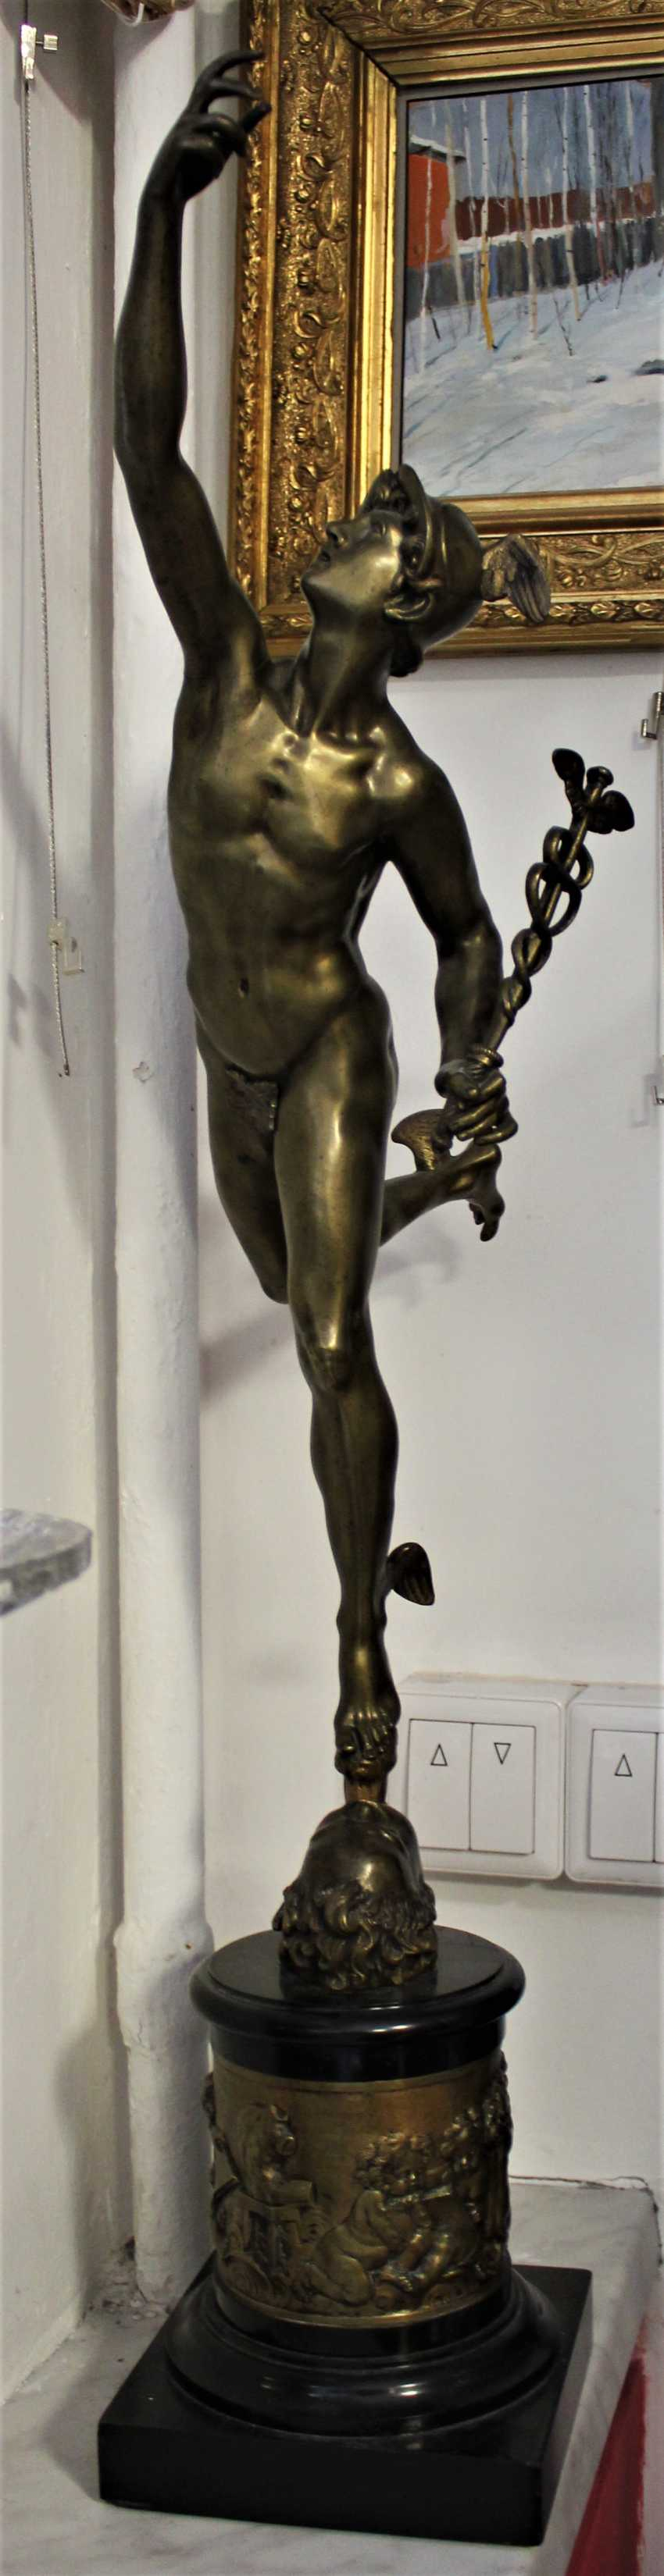 """The statuette """"swift-Footed mercury (the patron God of trade)"""", XIX century - photo 2"""